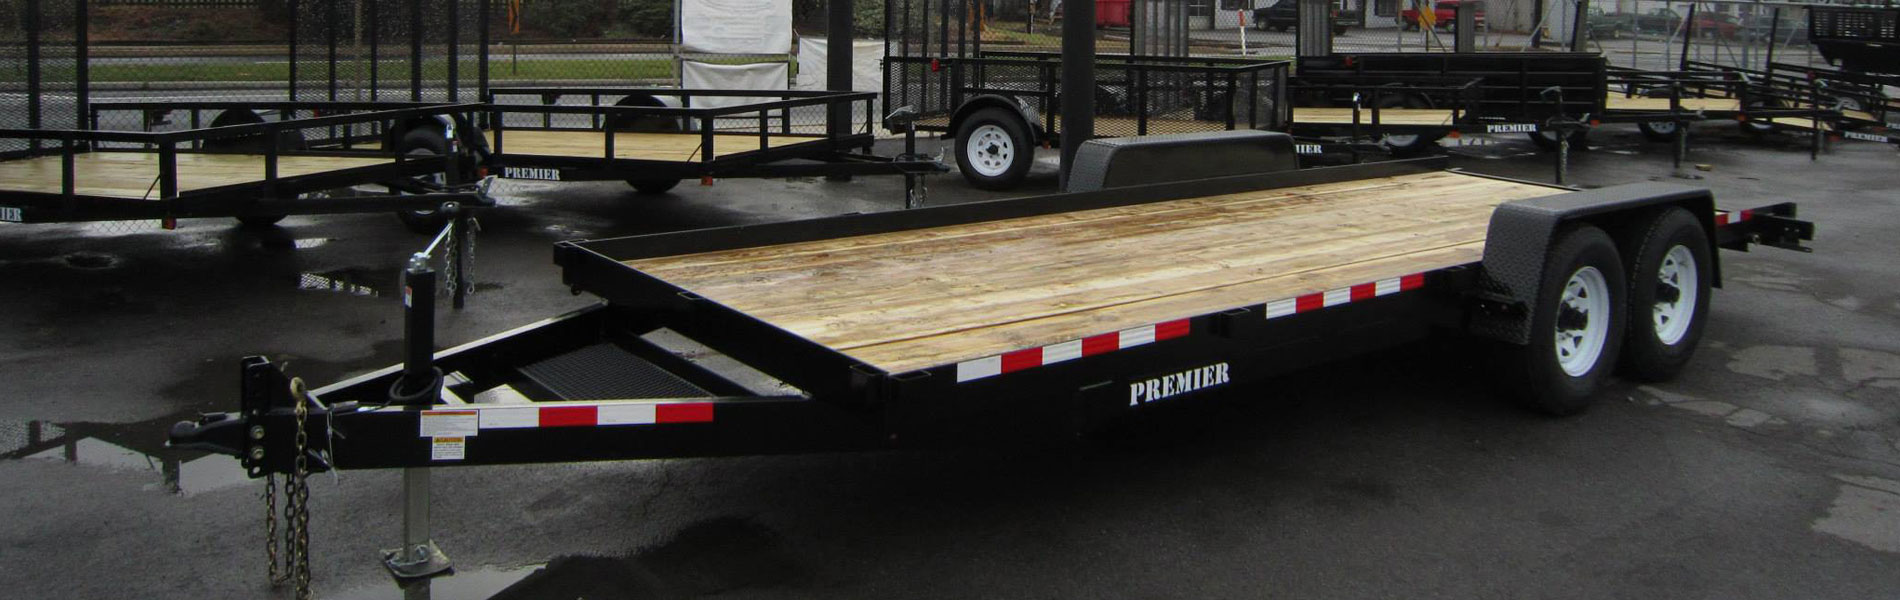 Home Trailer Depot Md Trailer Dealer For Utility Flatbed Dump And Enclosed Cargo Trailers In Md